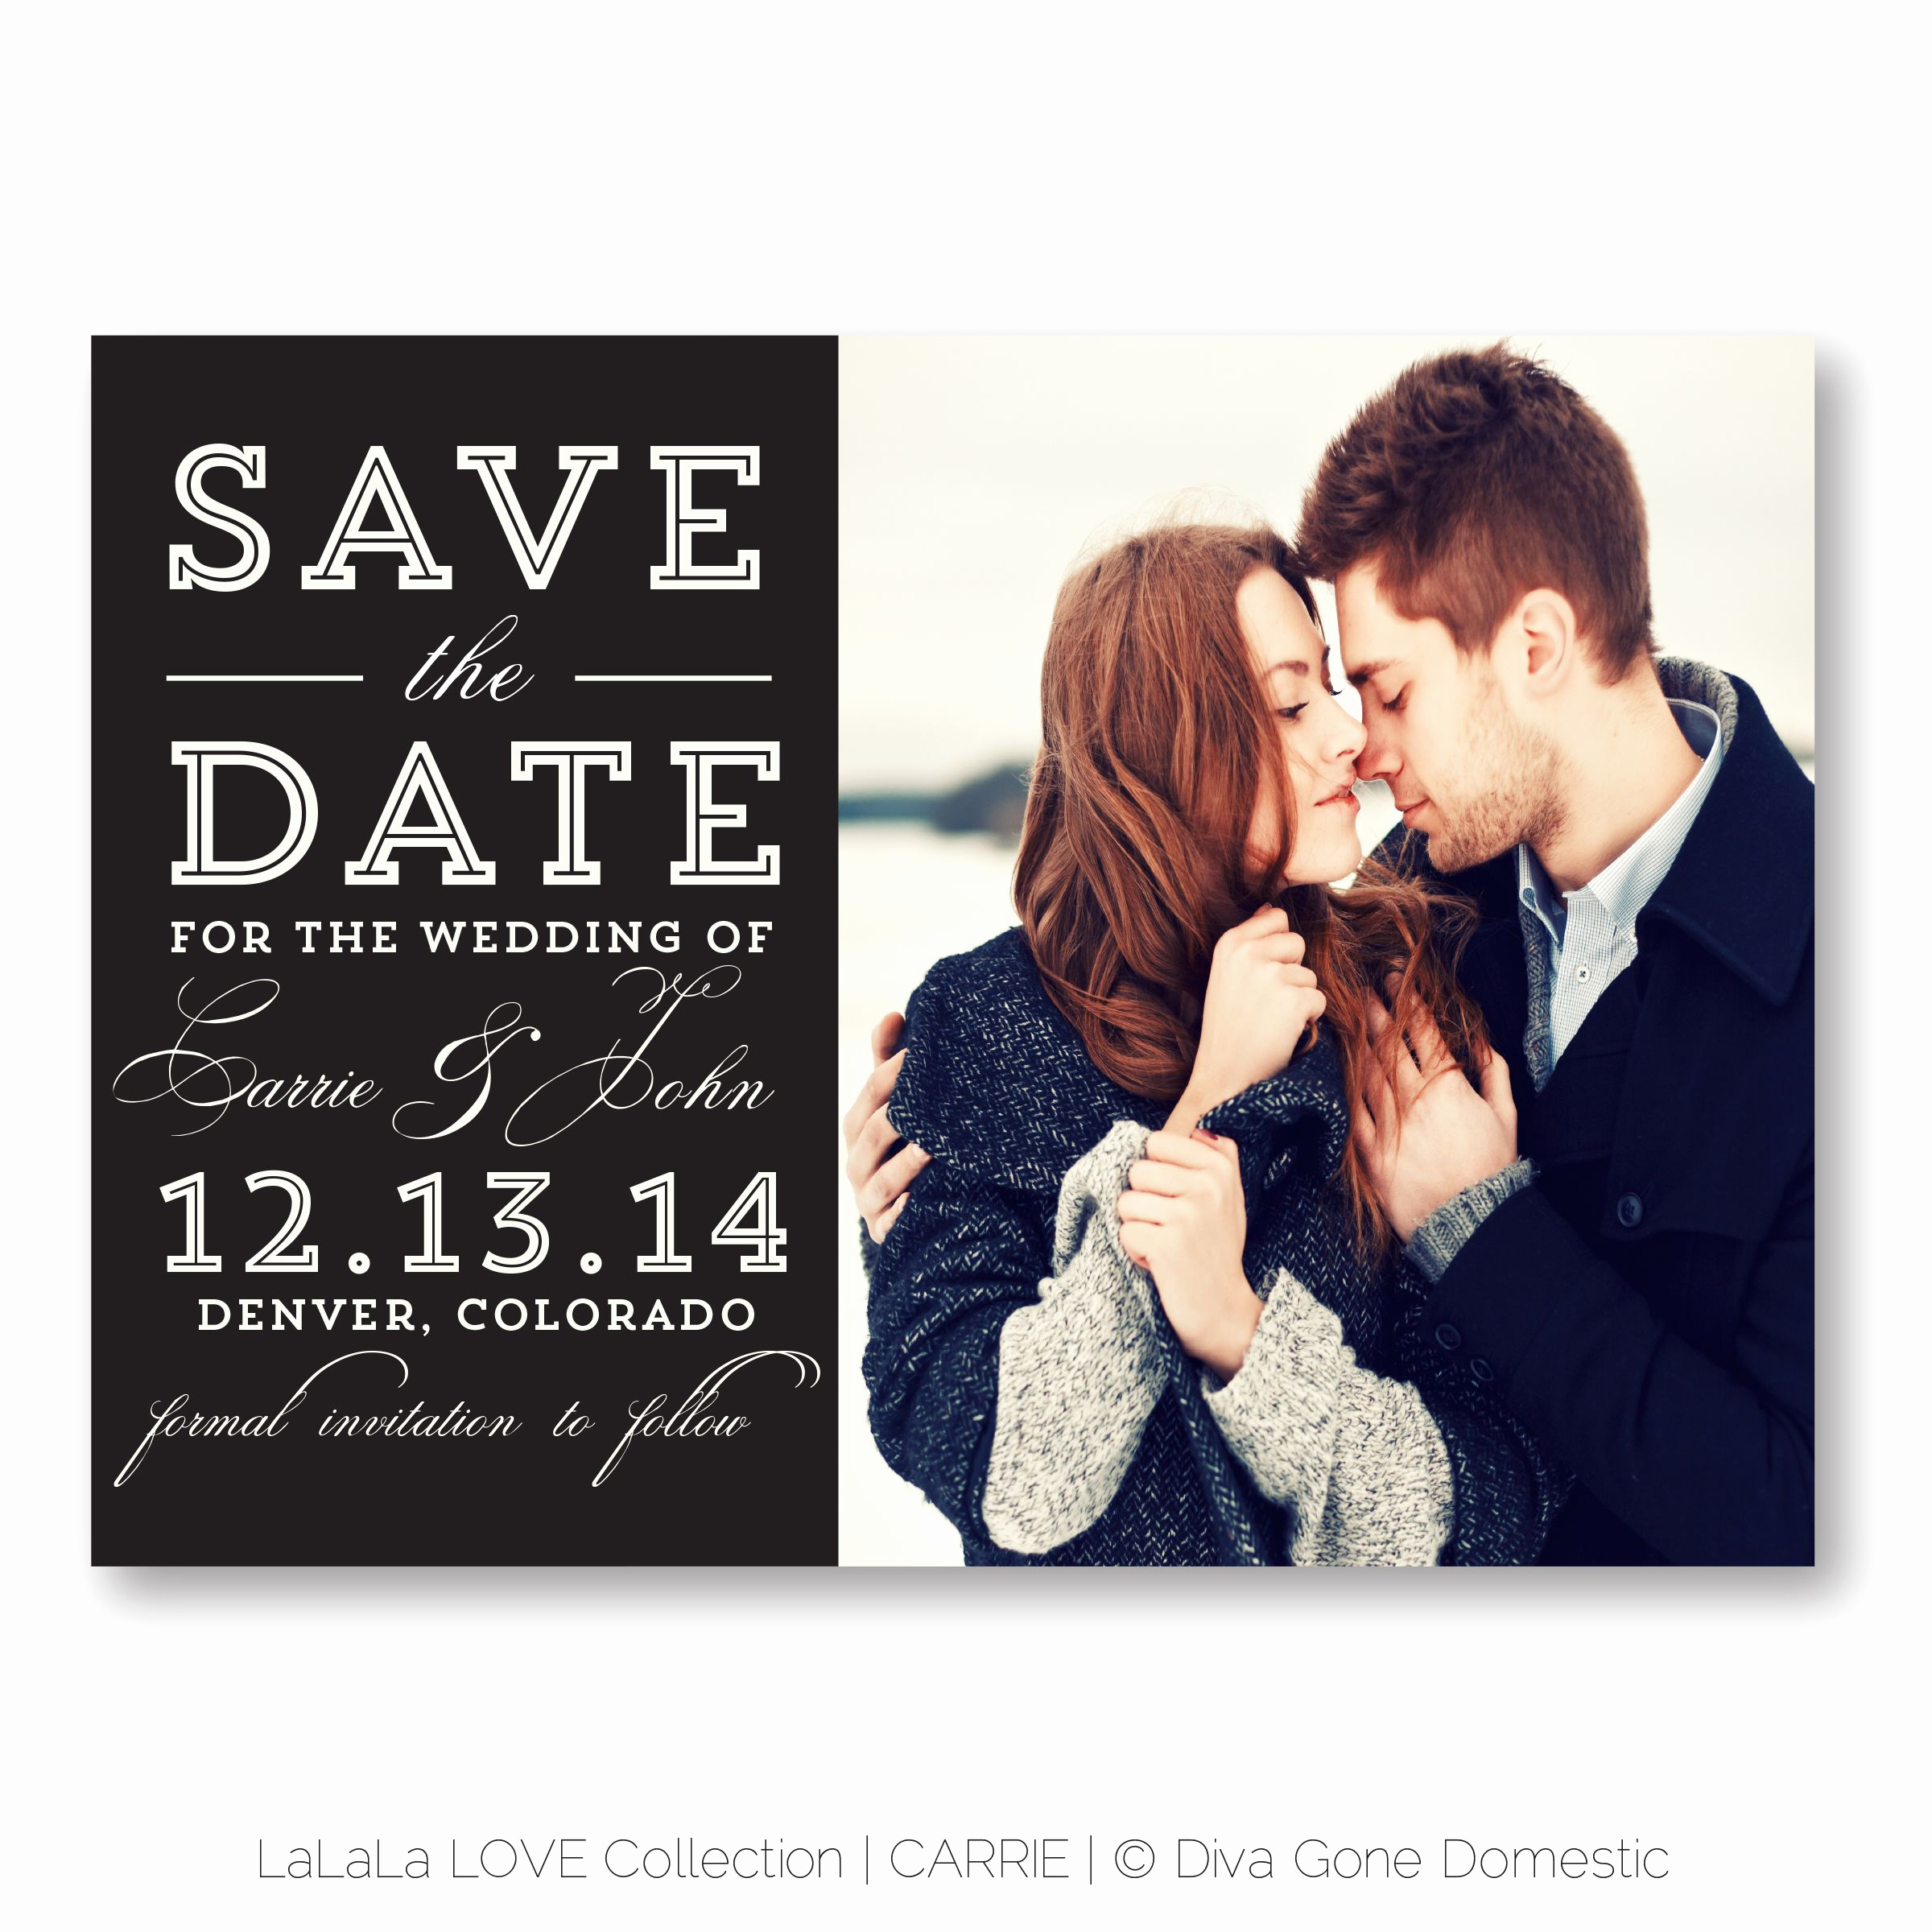 Save the Date Invitation Ideas Best Of Unique Save the Date Cards Postcards and Ideas by Dgd